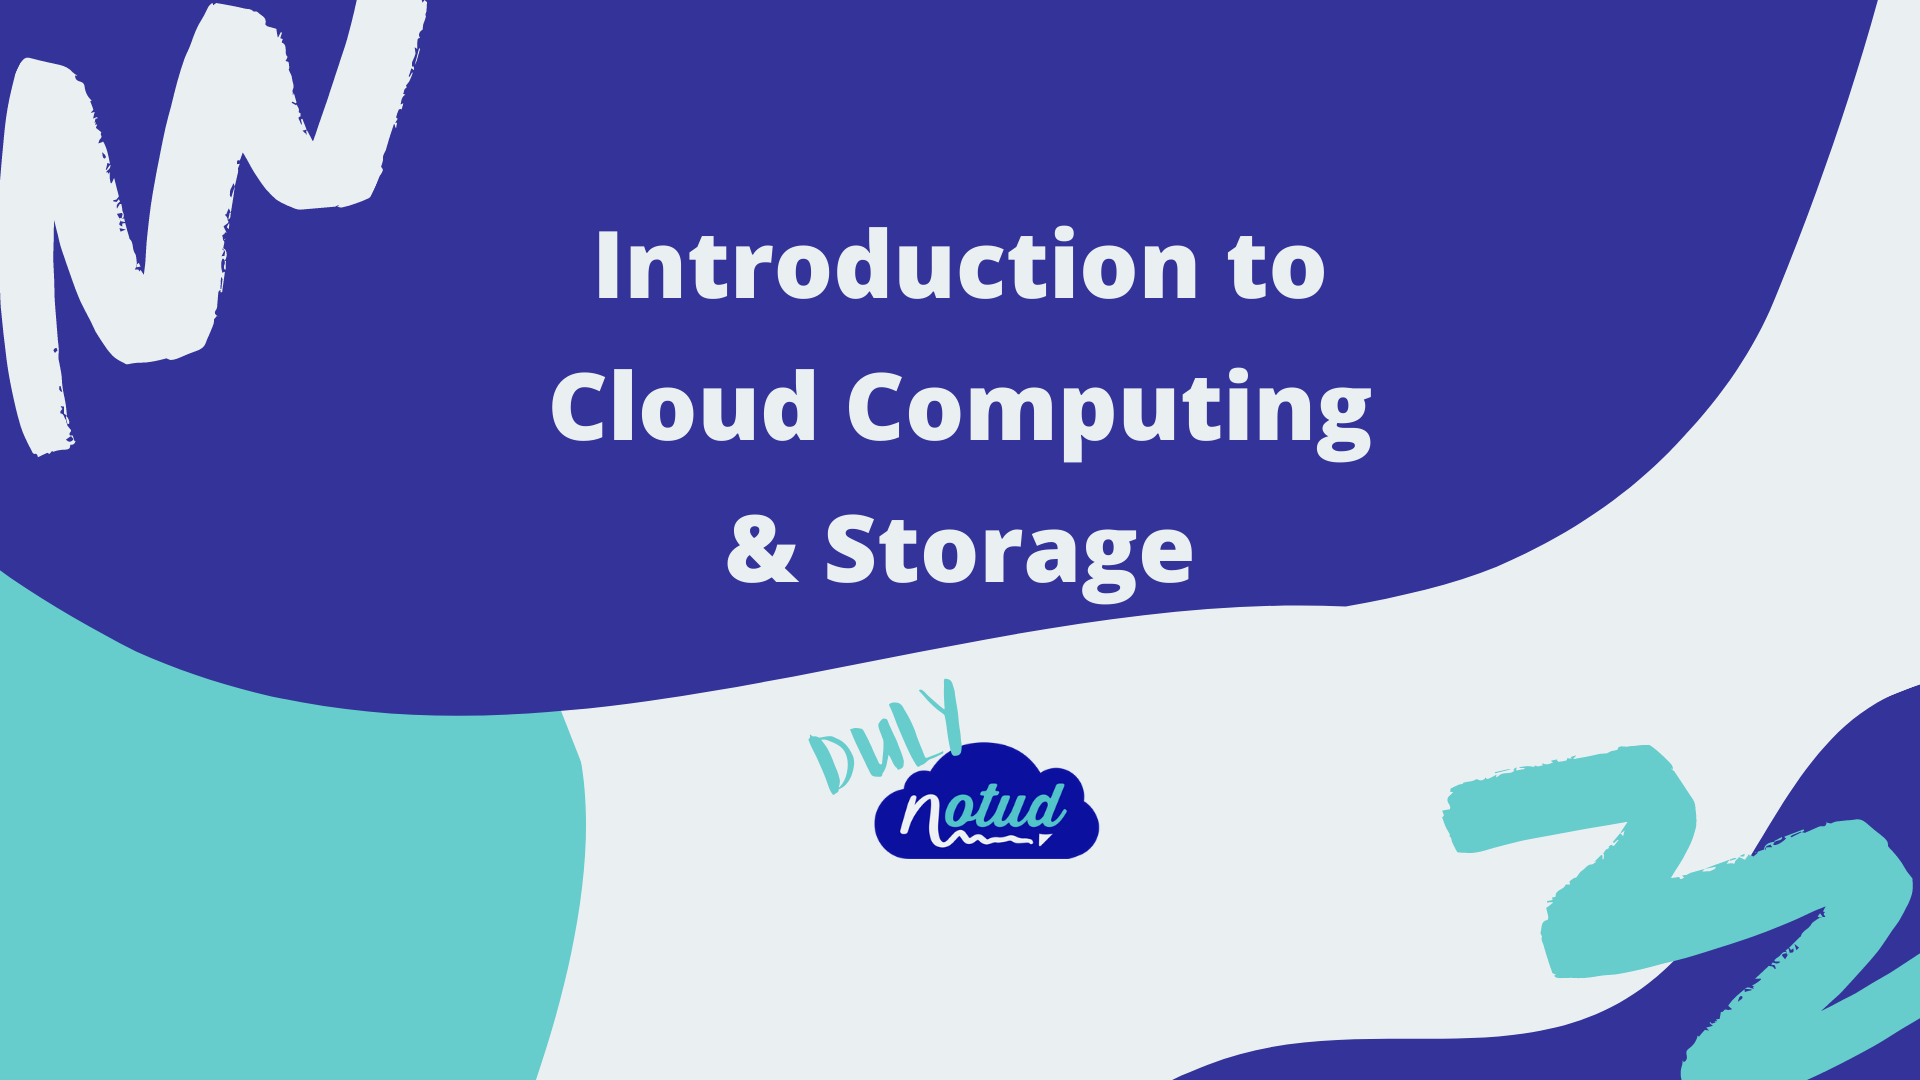 Duly Notud blog - introduction to cloud computing and storage